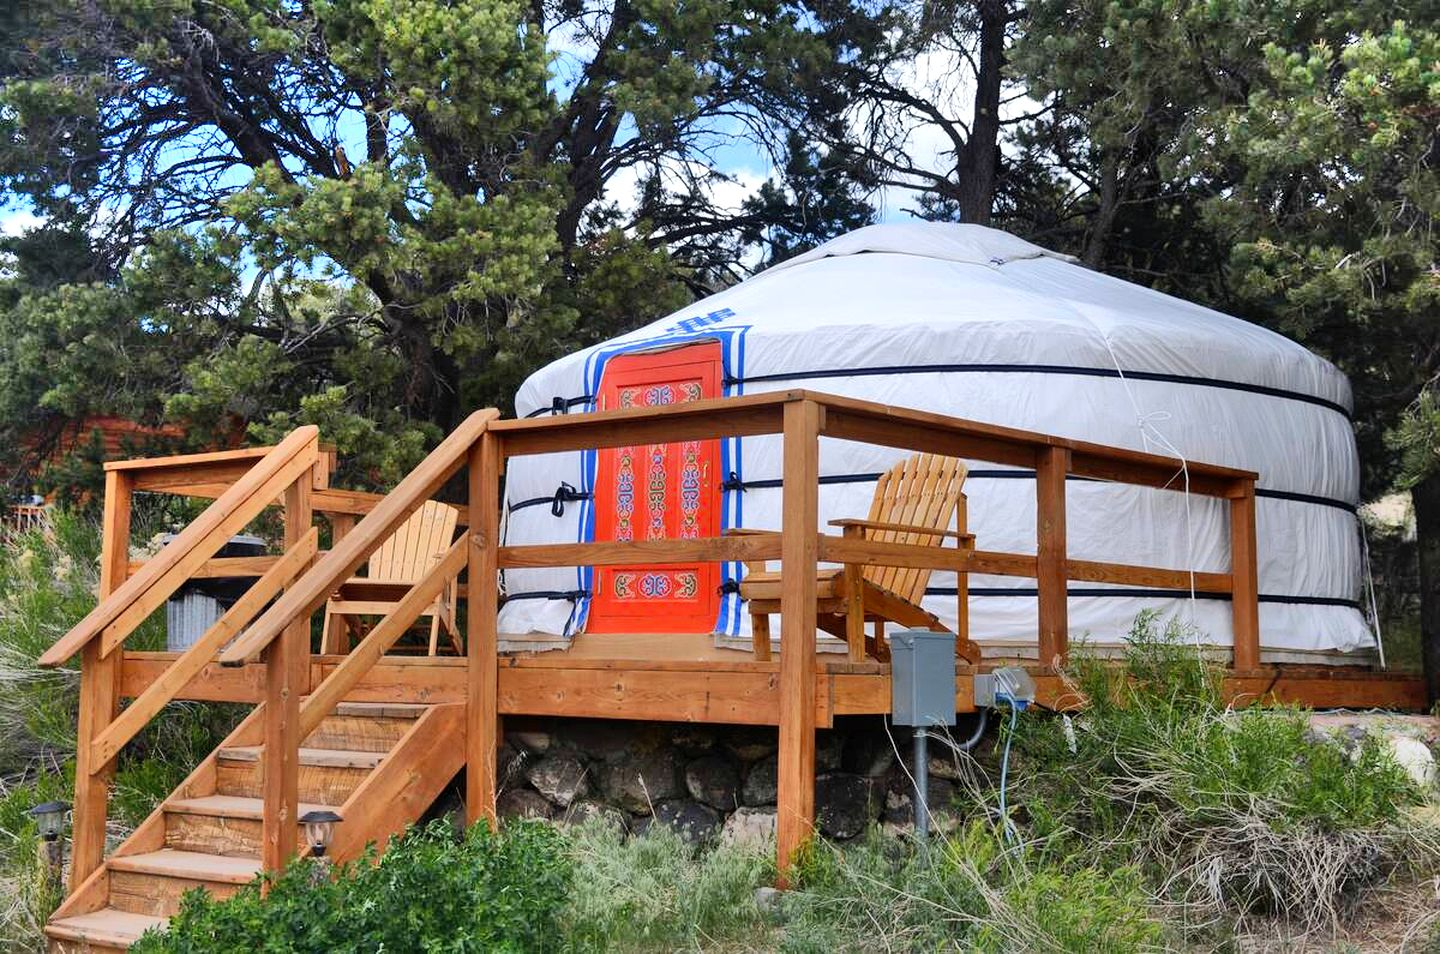 This Boulder accommodation is great for glamping in Utah